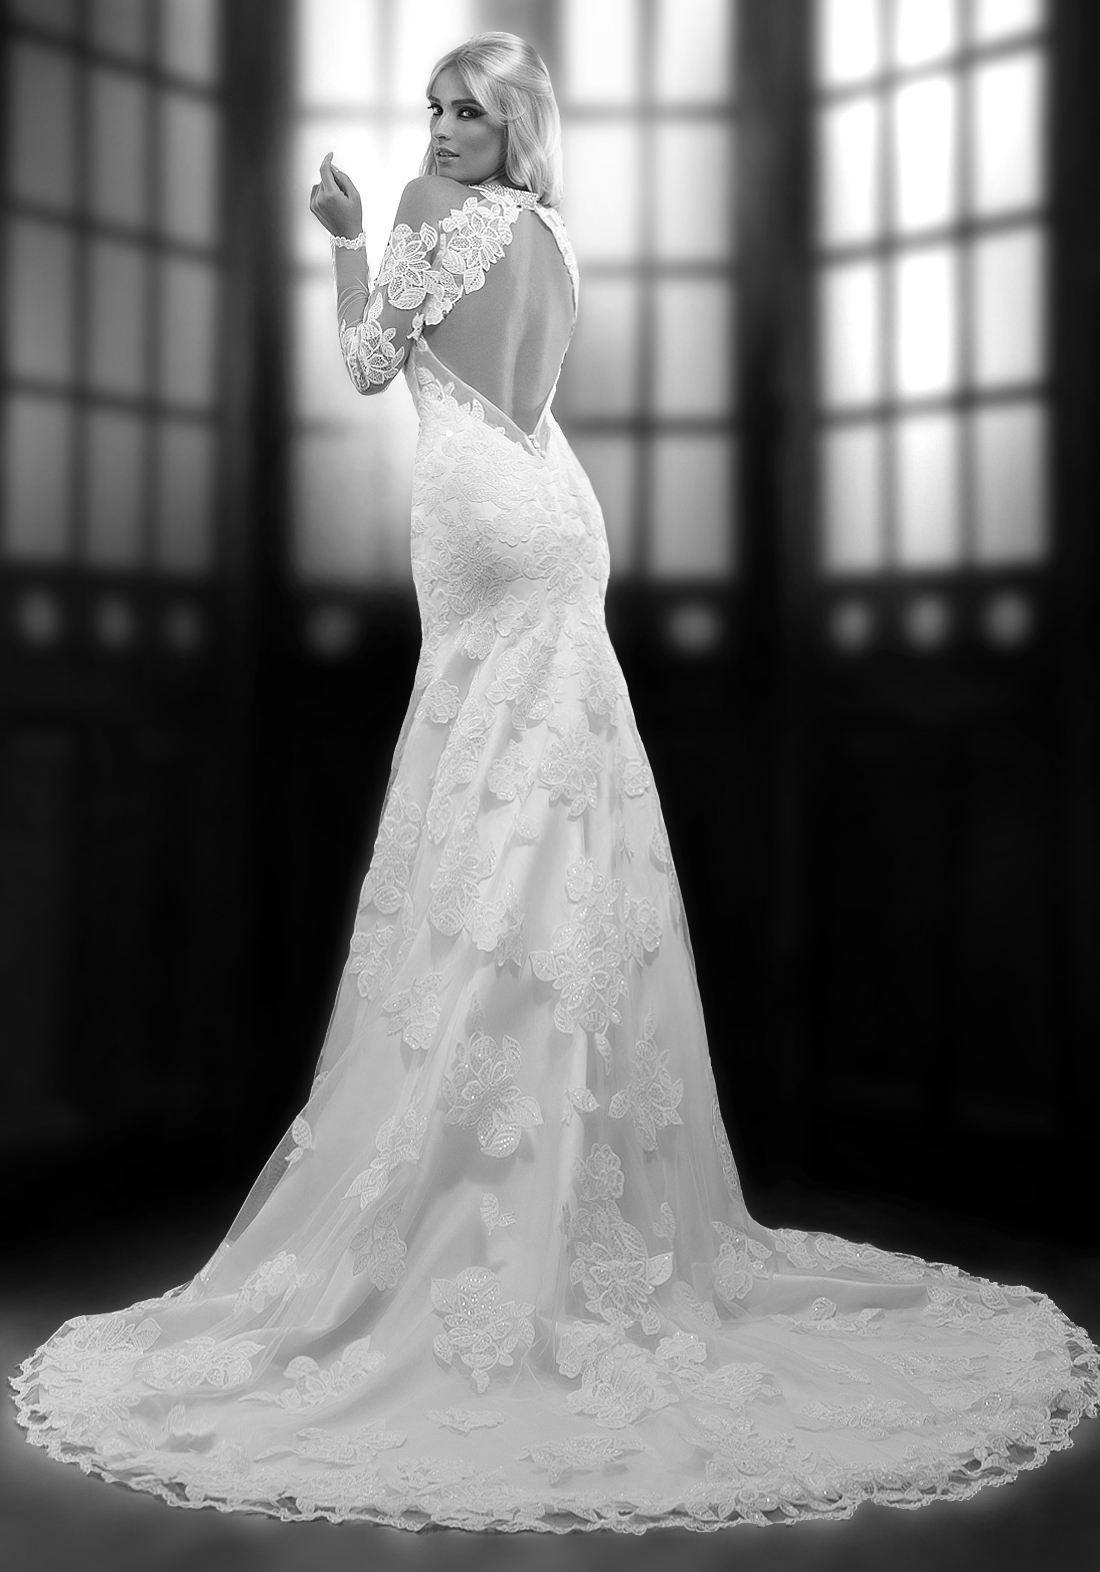 bien-savvy-wedding-dresses-2014-collection-5-01232014